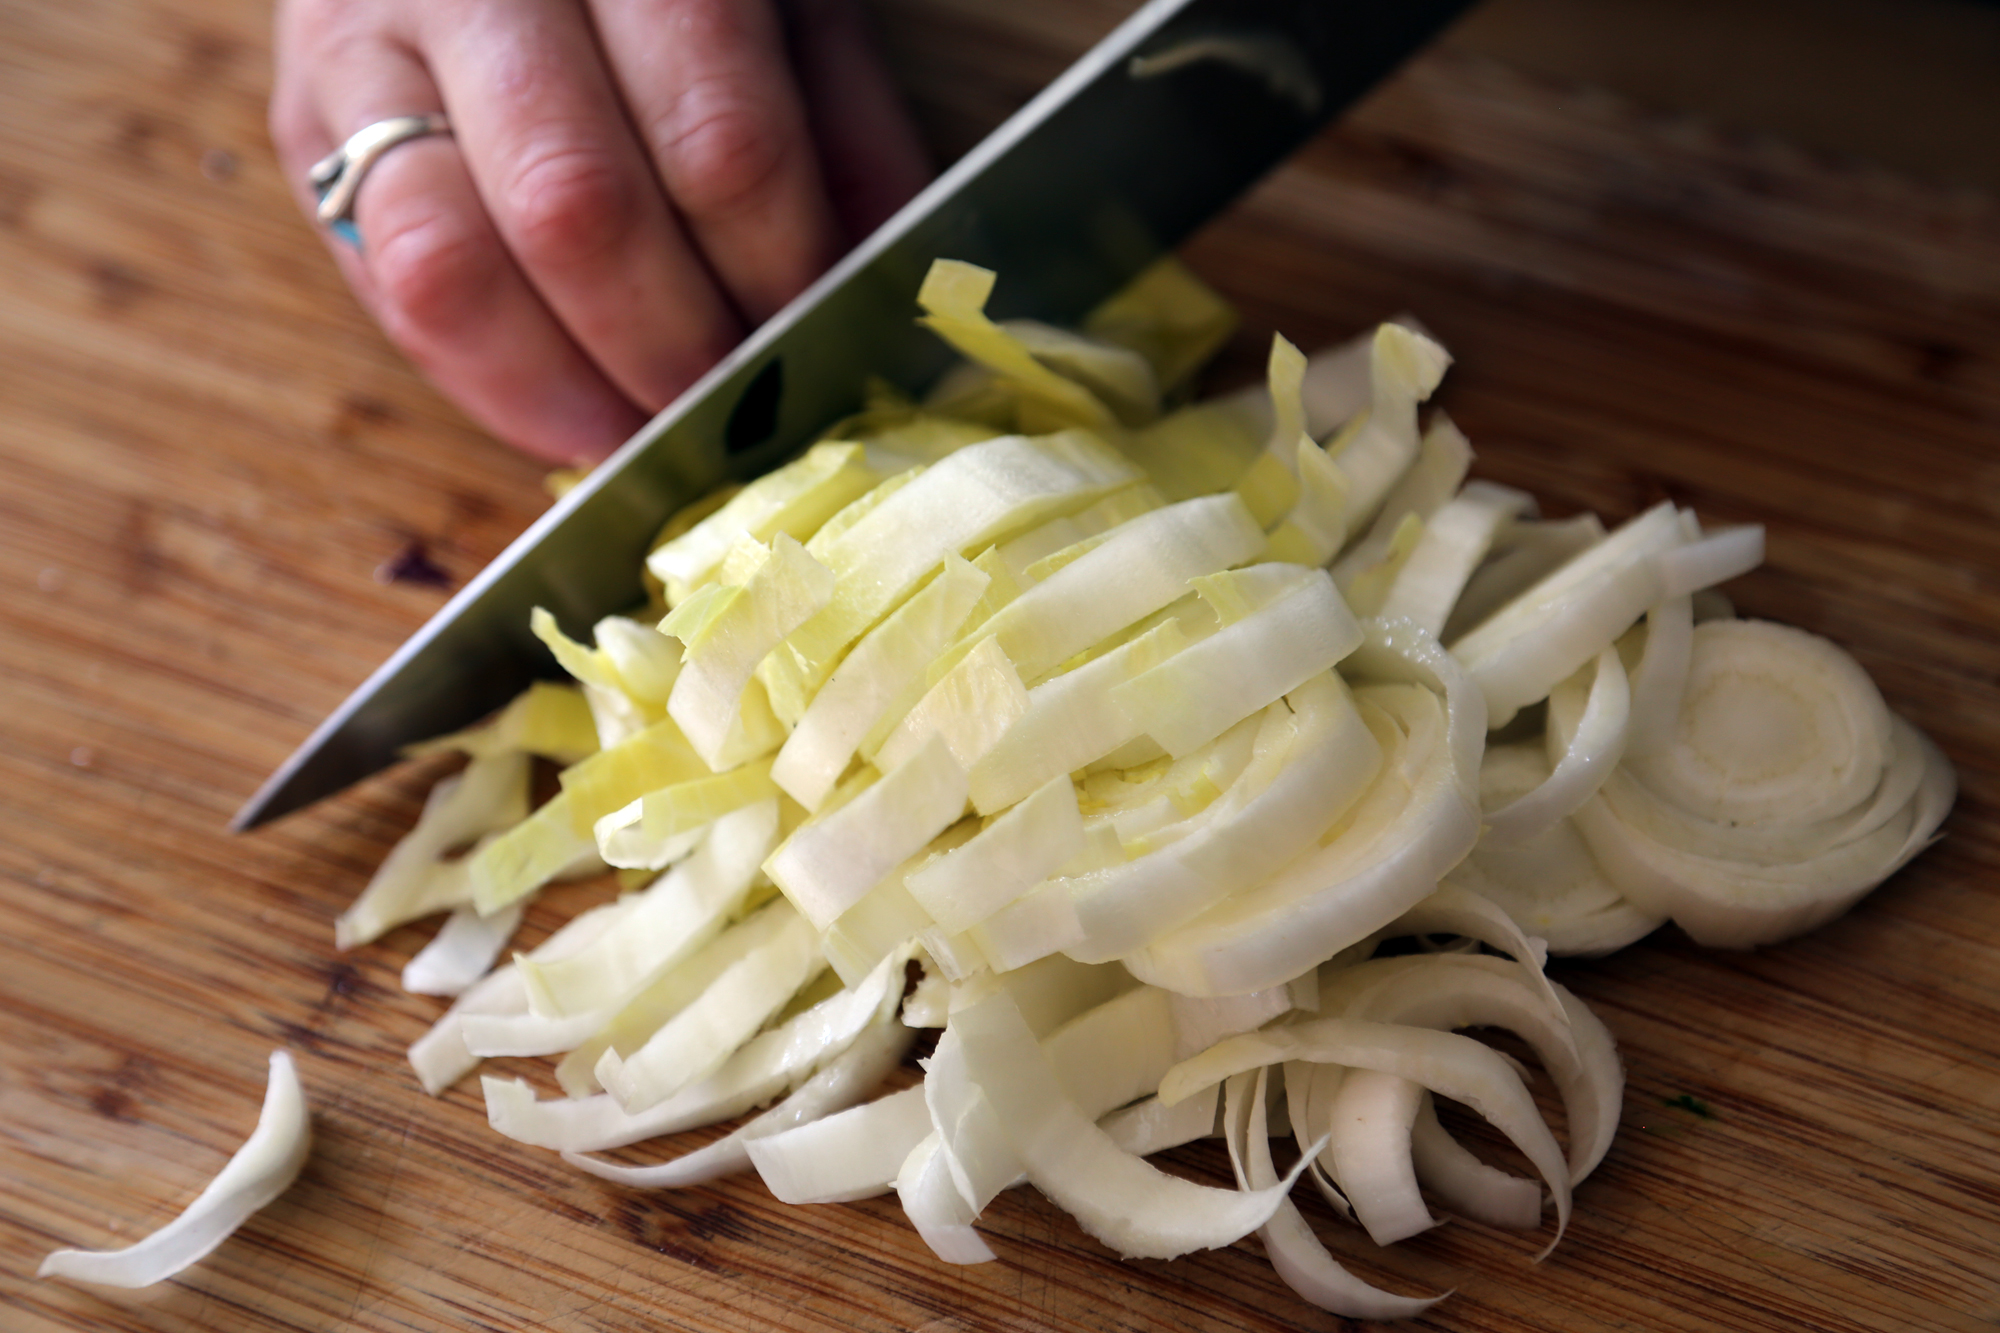 1 endive, thinly sliced.